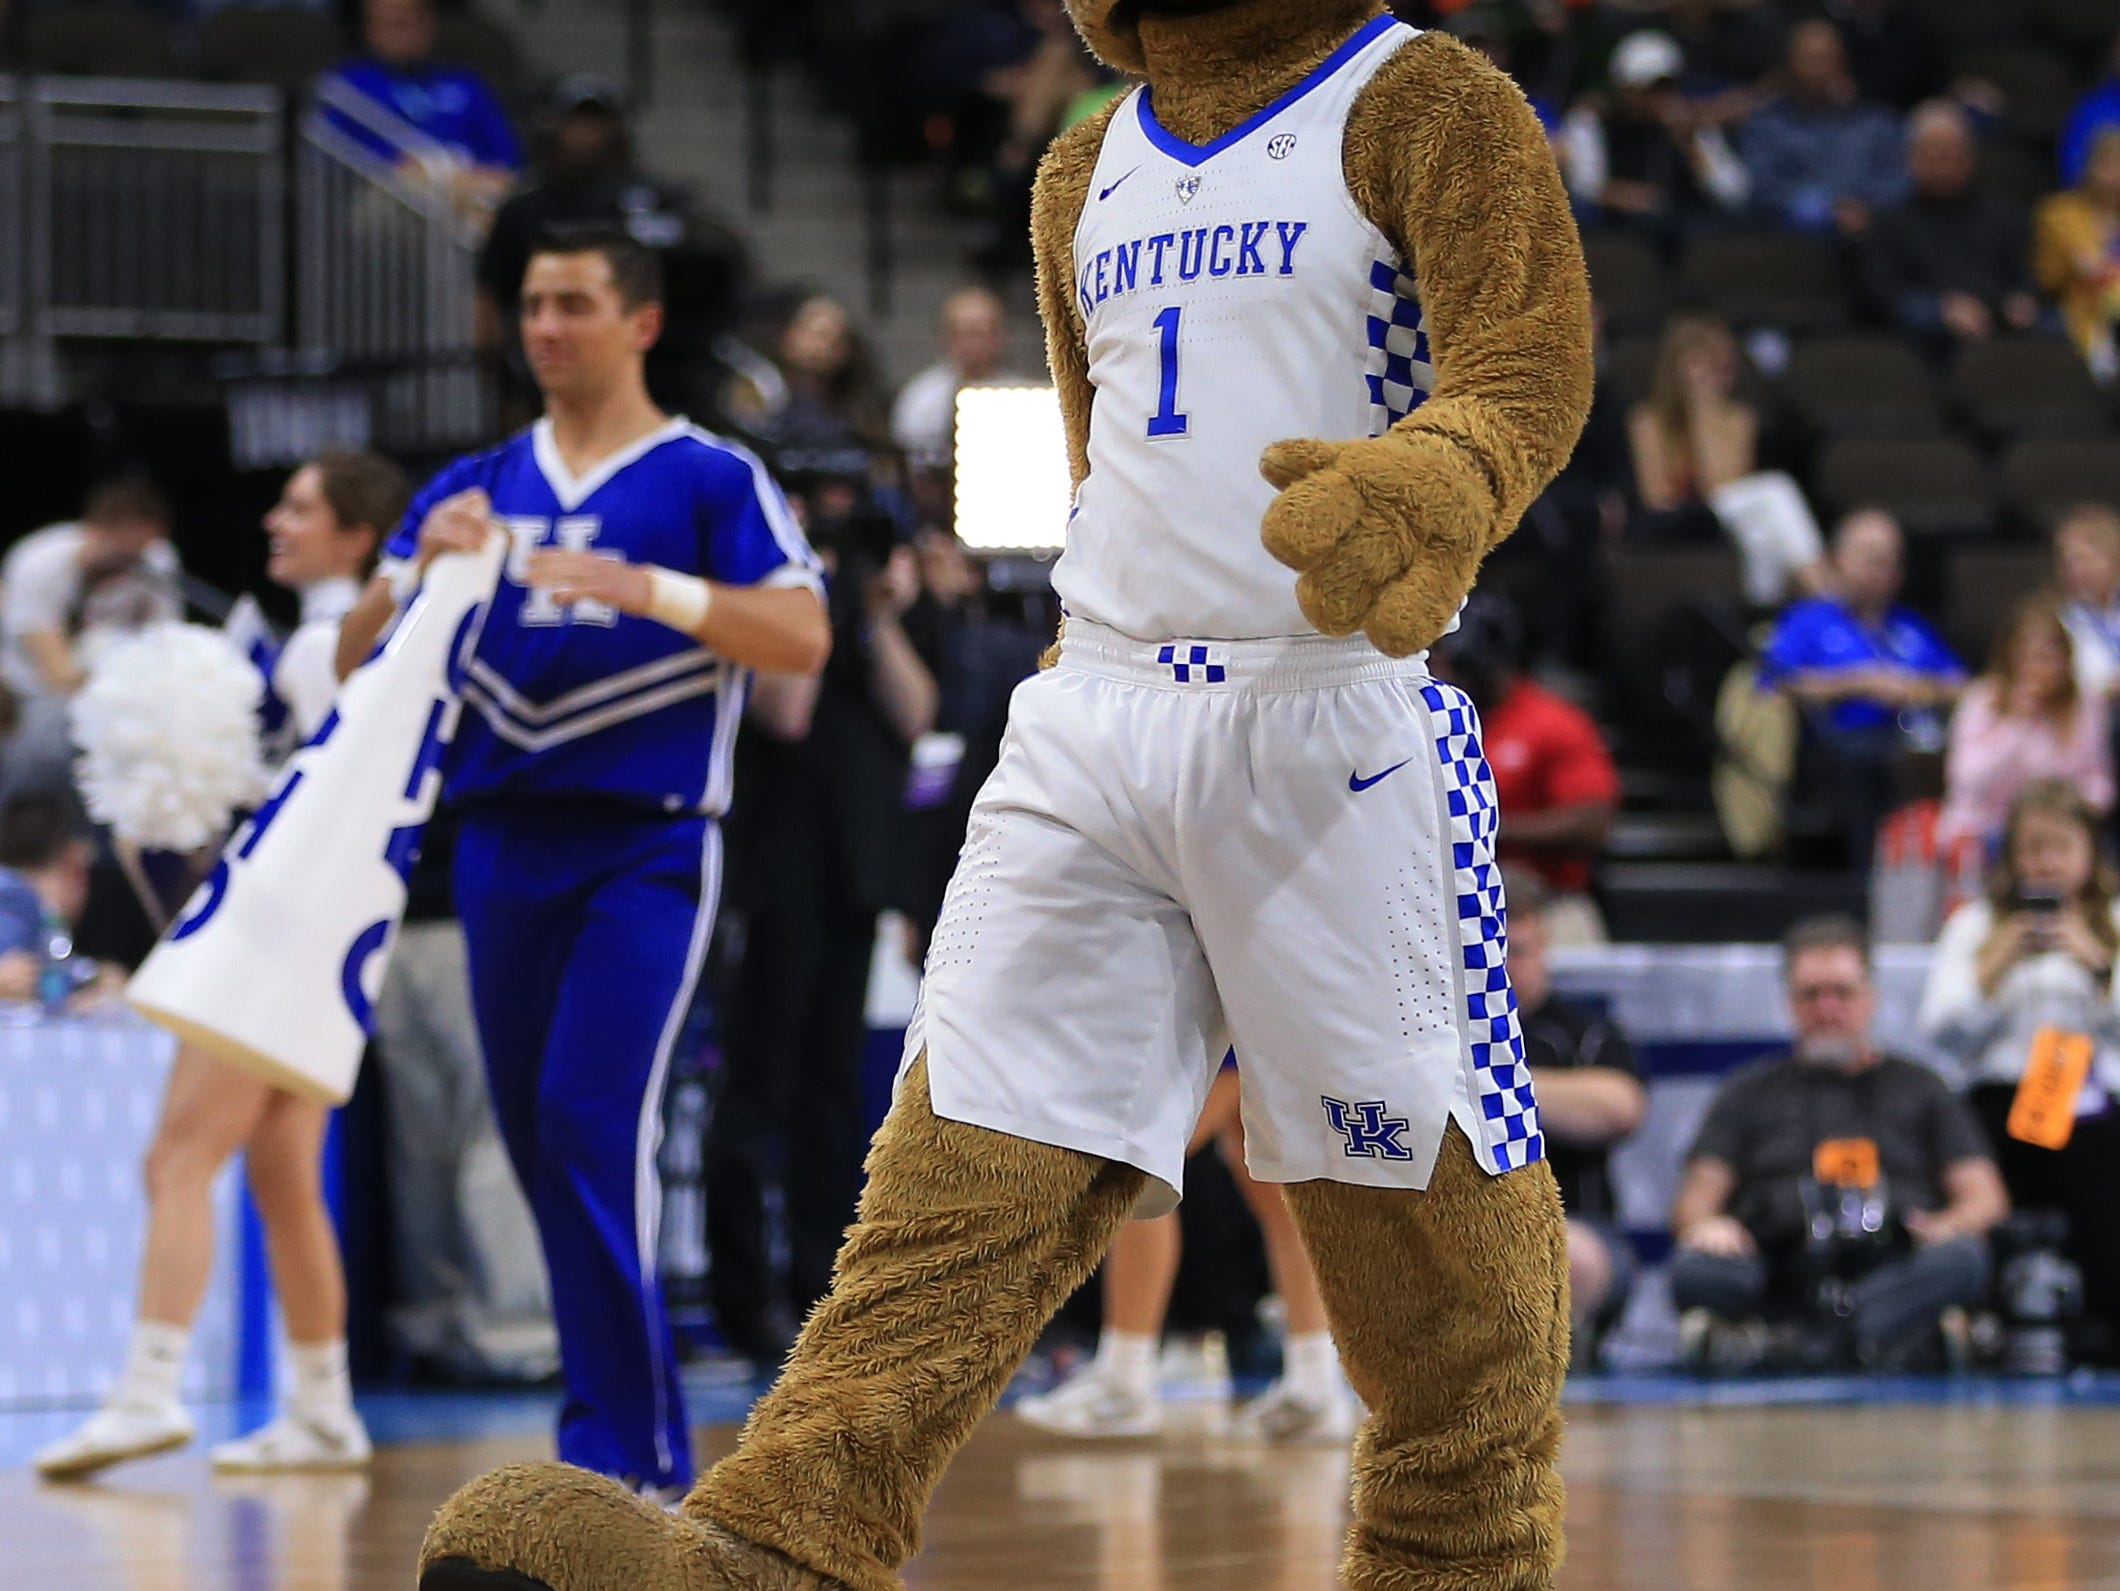 Mar 21, 2019; Jacksonville, FL, USA; The Kentucky Wildcats mascot looks on from the court during a stoppage in play in the first half in the first round of the 2019 NCAA Tournament against the Abilene Christian Wildcats at Jacksonville Veterans Memorial Arena. Mandatory Credit: Matt Stamey-USA TODAY Sports